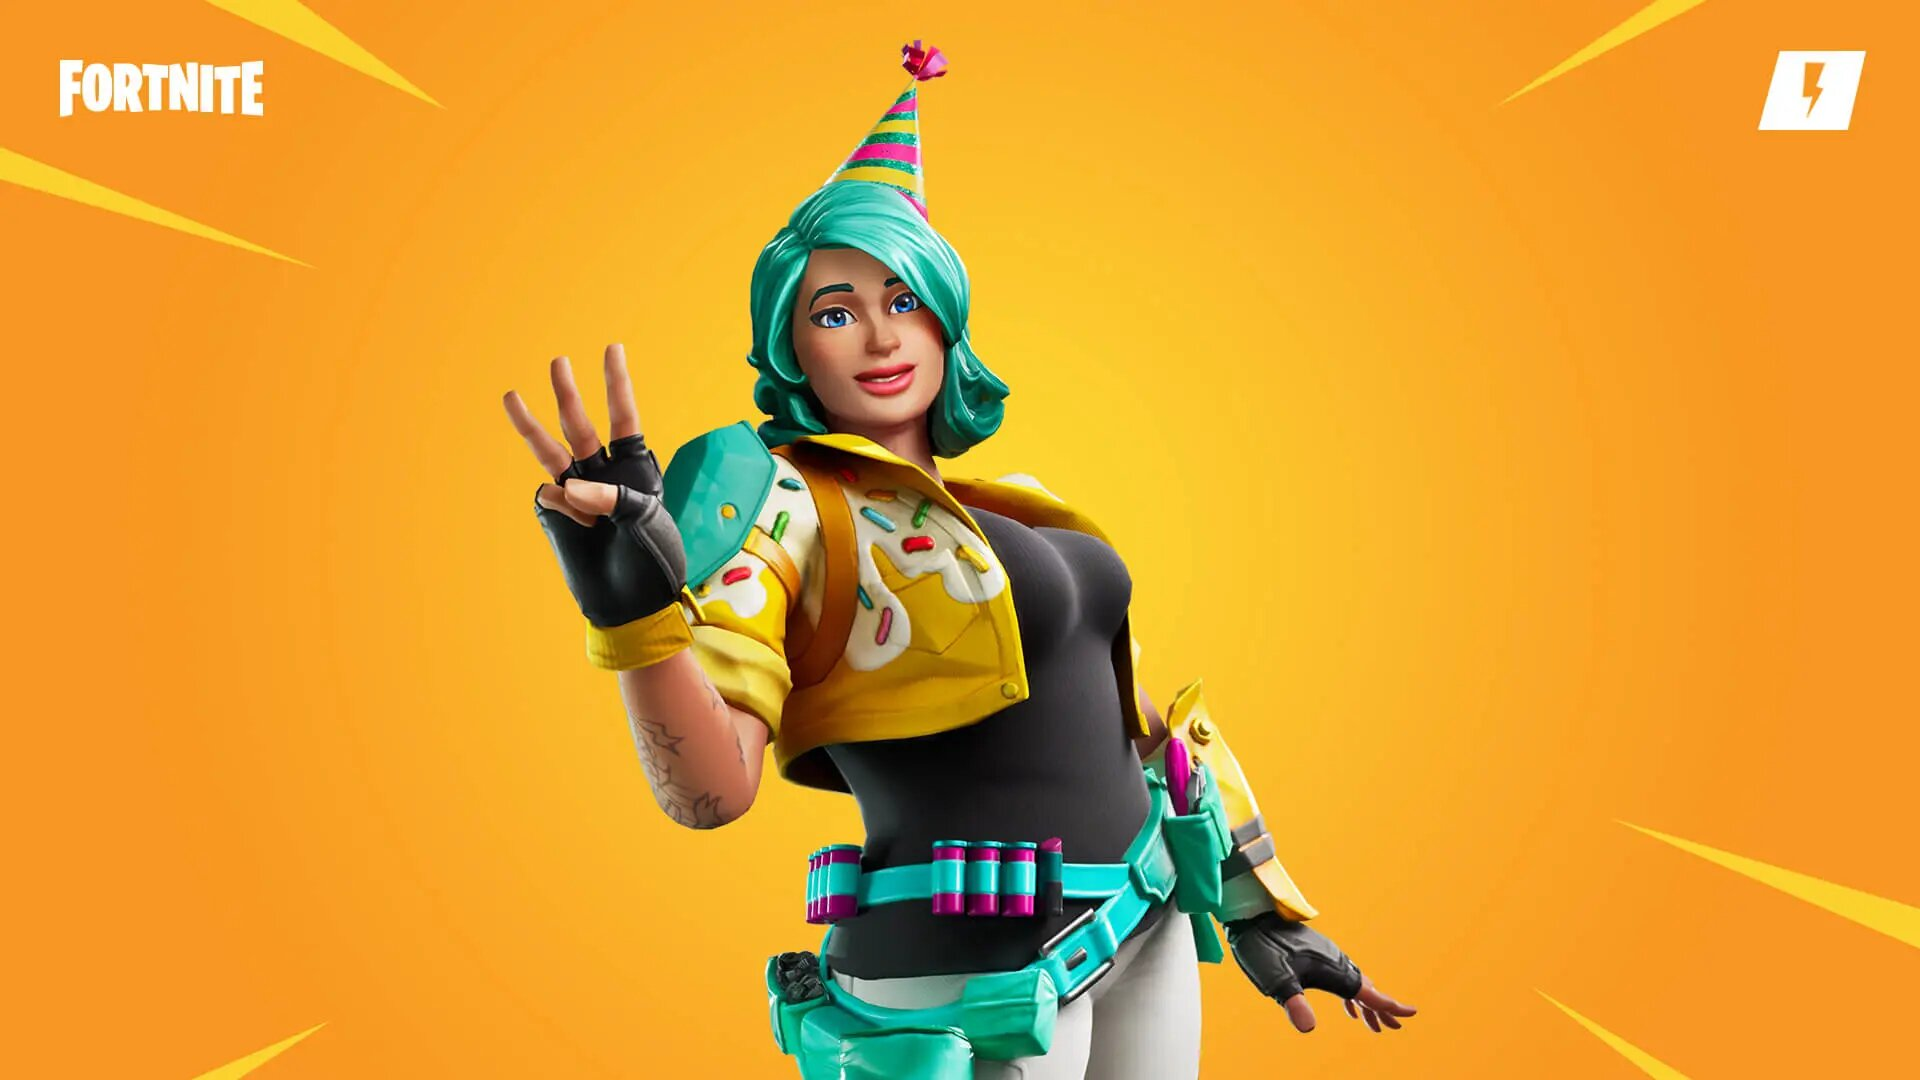 How To Dance In Front Of Different Birthday Cakes In Fortnite Dot Esports